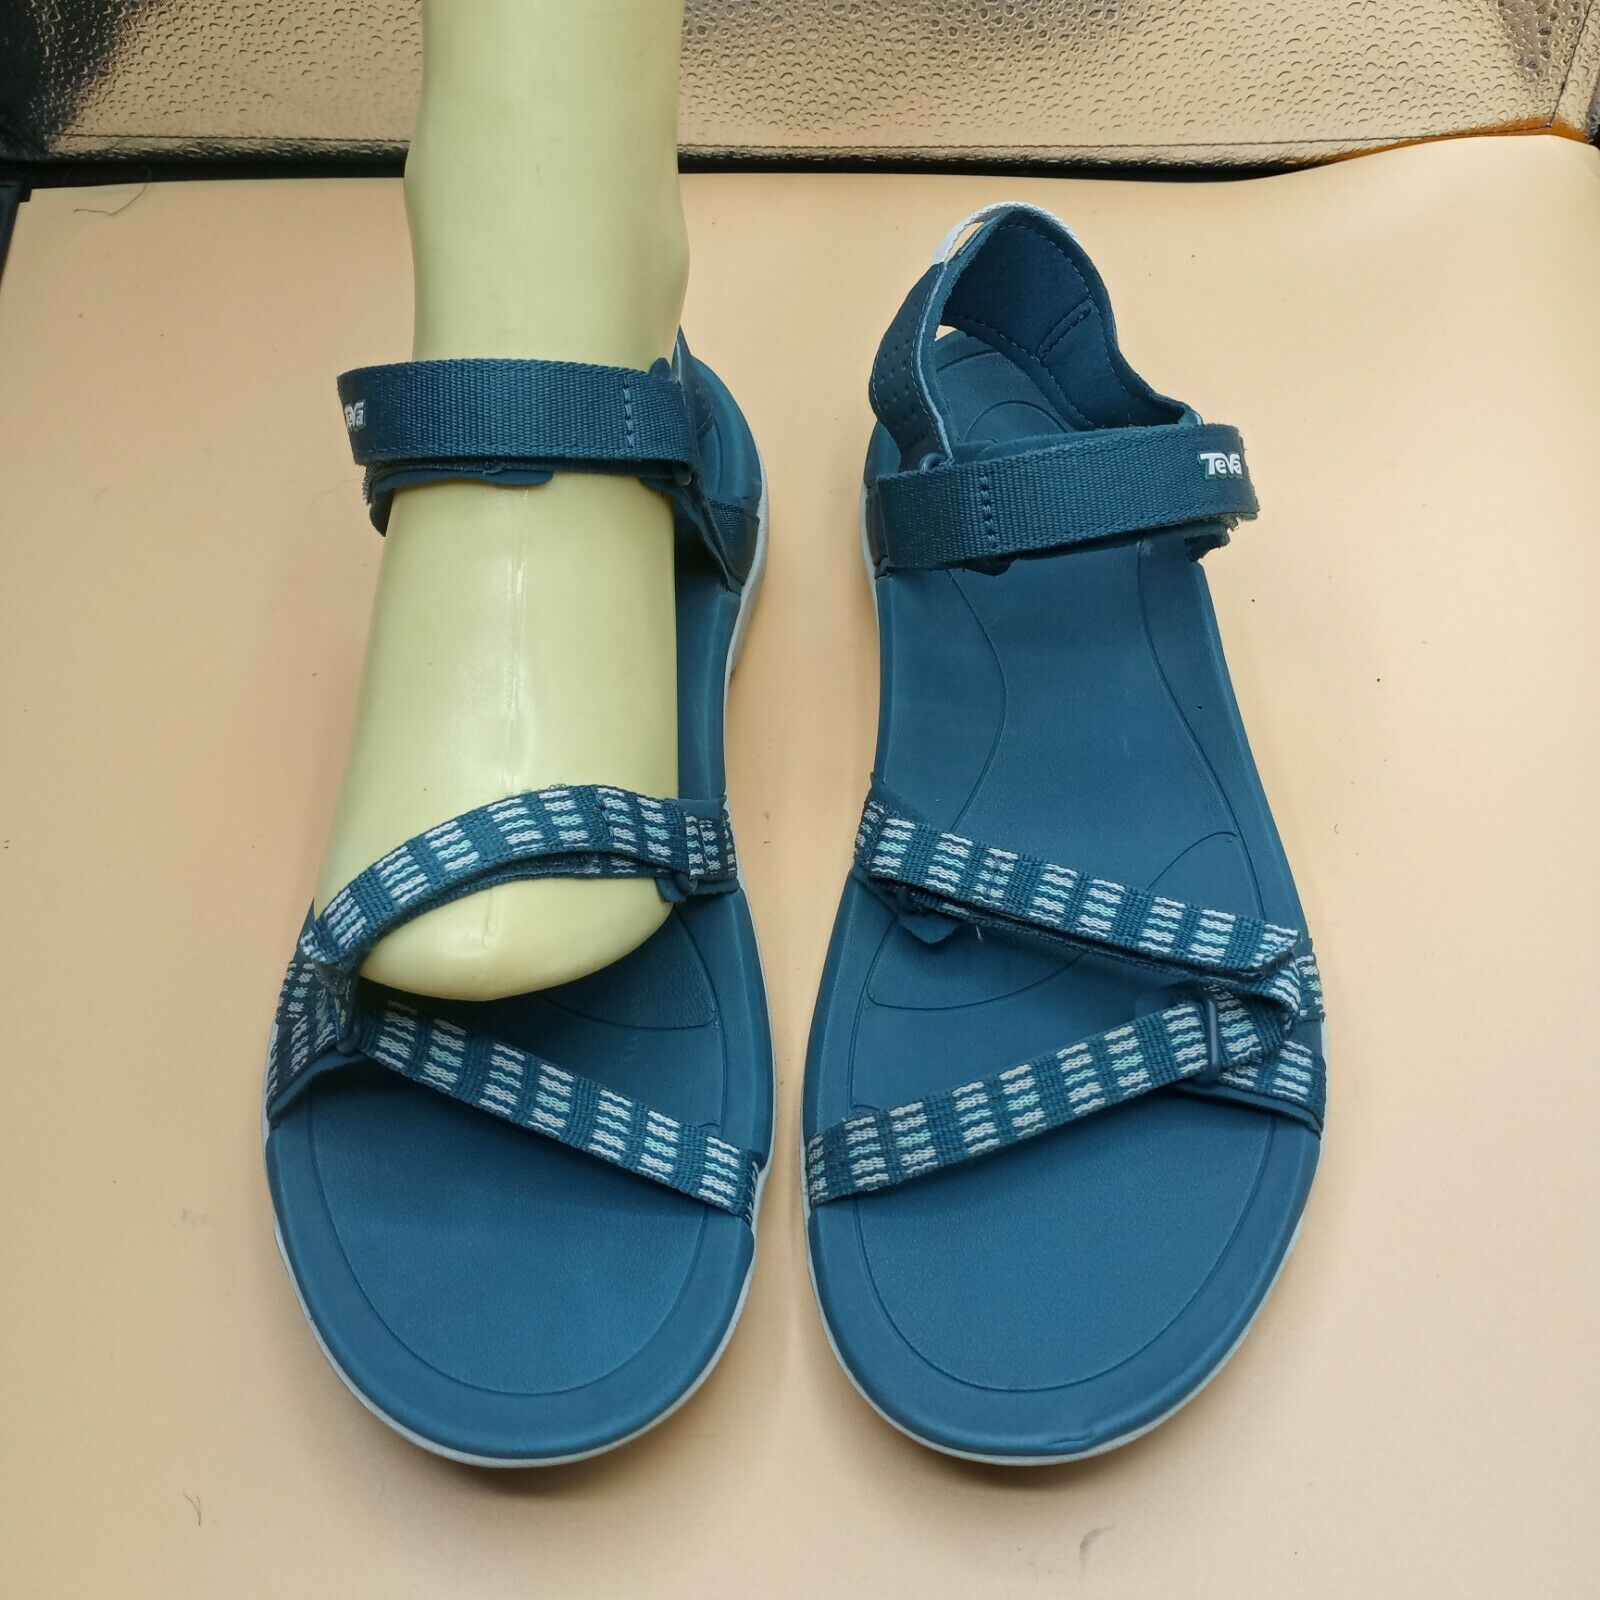 Teva Women Sandals 11 - image 4